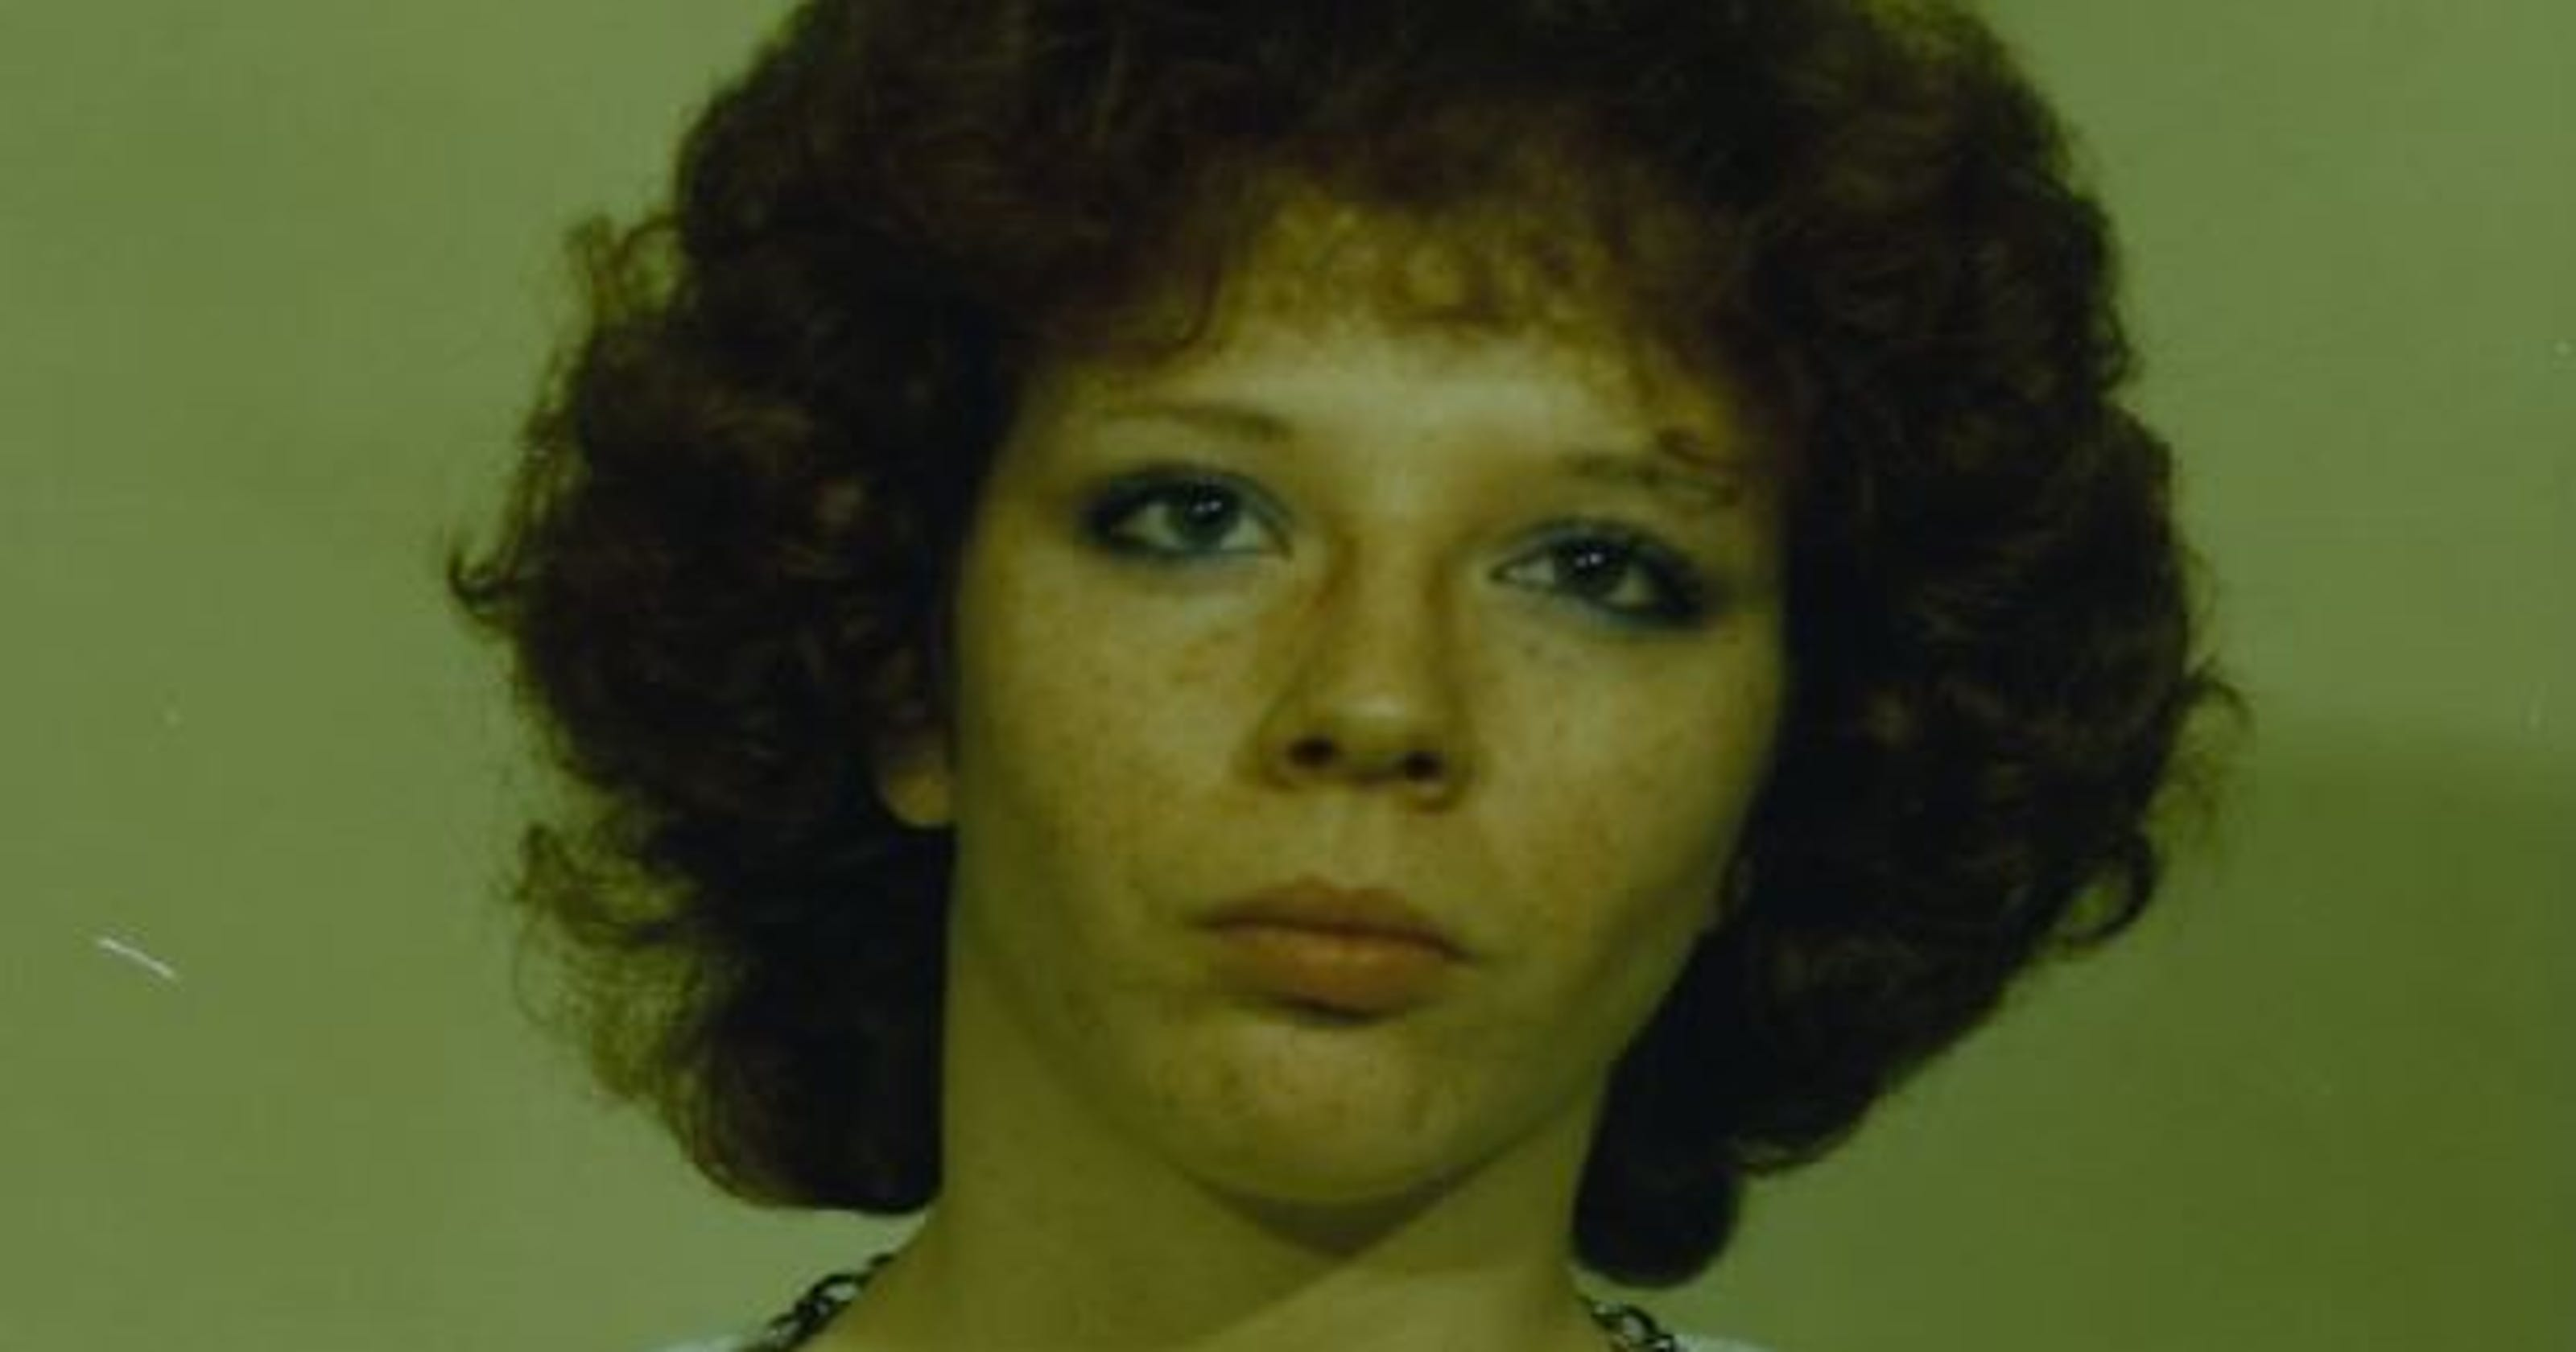 Redhead Murders among alarming trend of cold-case highway